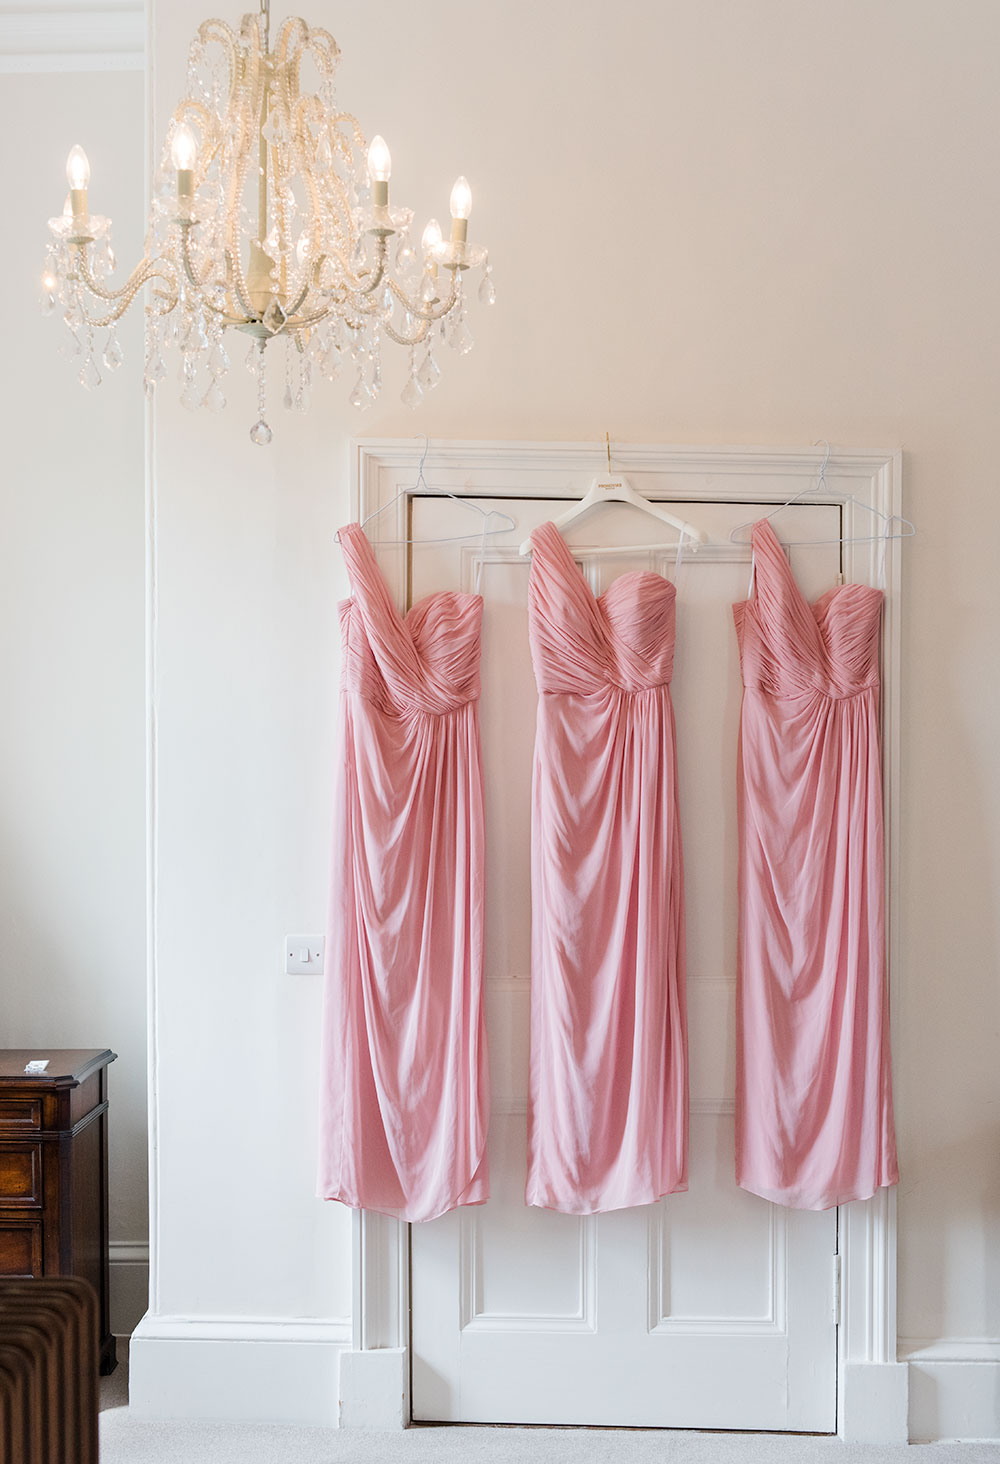 The bridesmaids dresses, how long does a wedding photographer stay